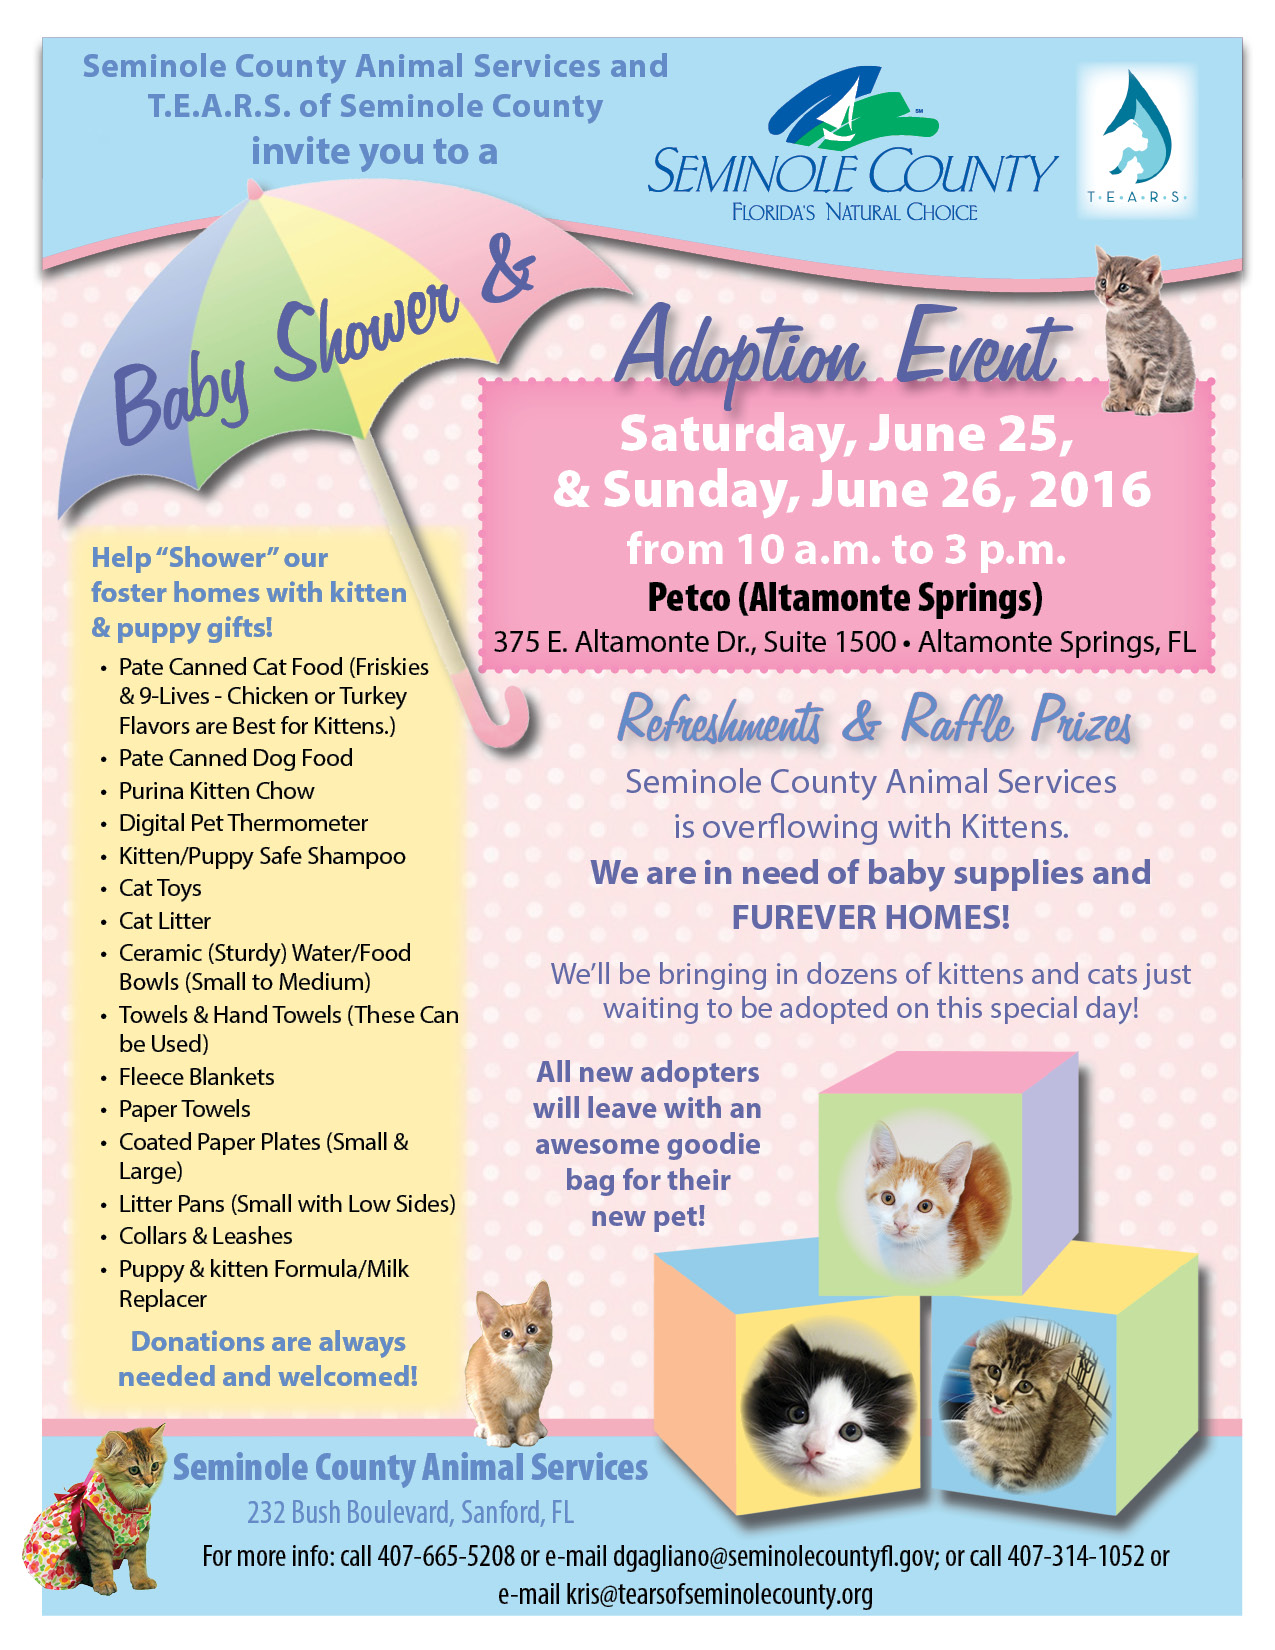 Baby Showers On Saturday Or Sunday ~ Kitten baby shower adoption event at petco altamonte